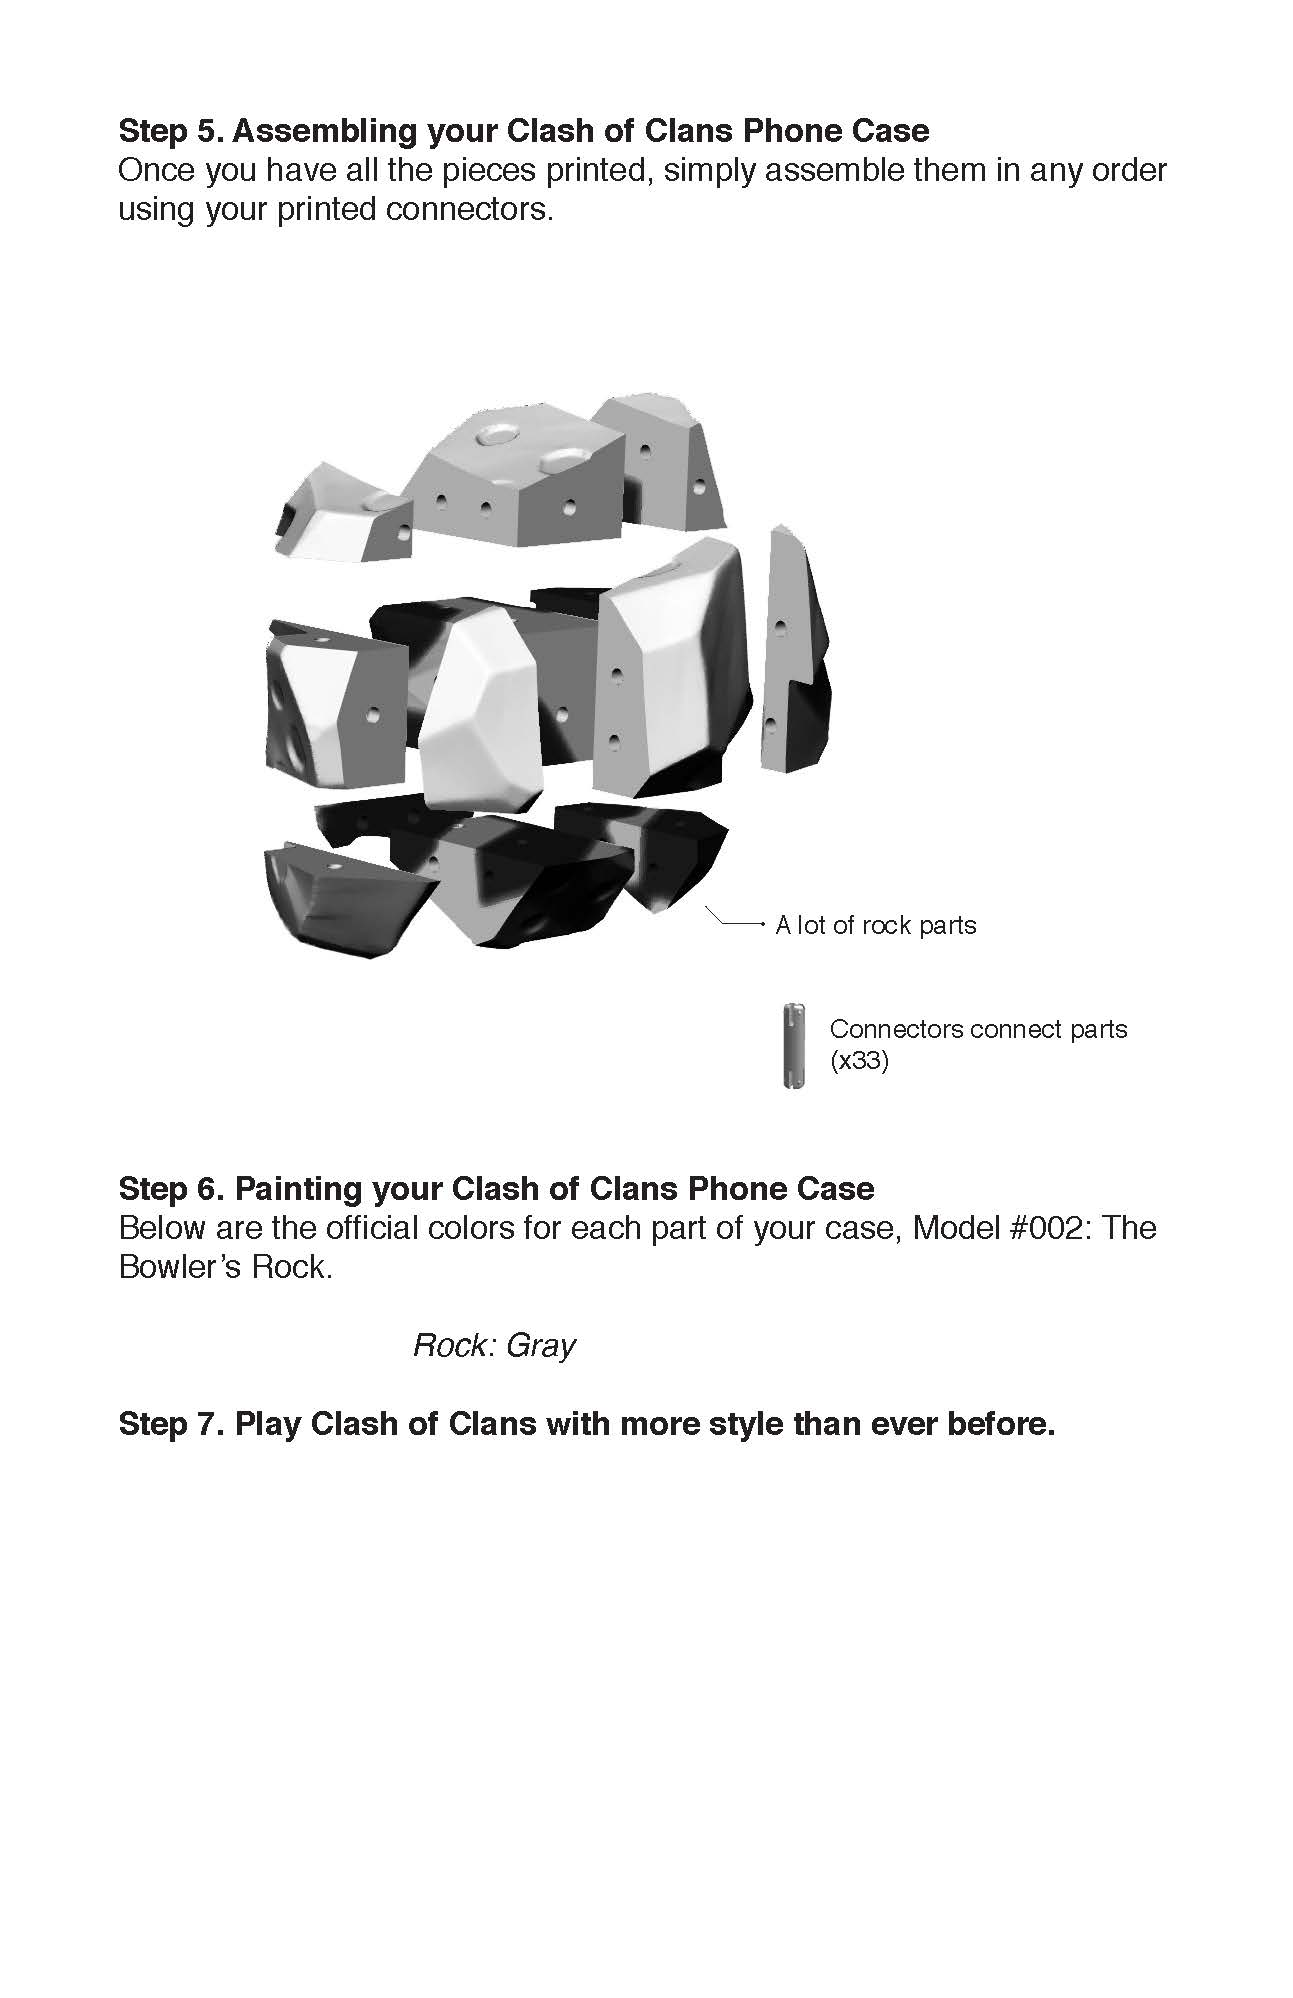 Clash-of-Clans-Phone-Cases-Instruction-Manual-Model-002-The-Bowlers-Rock_Page_3.jpg